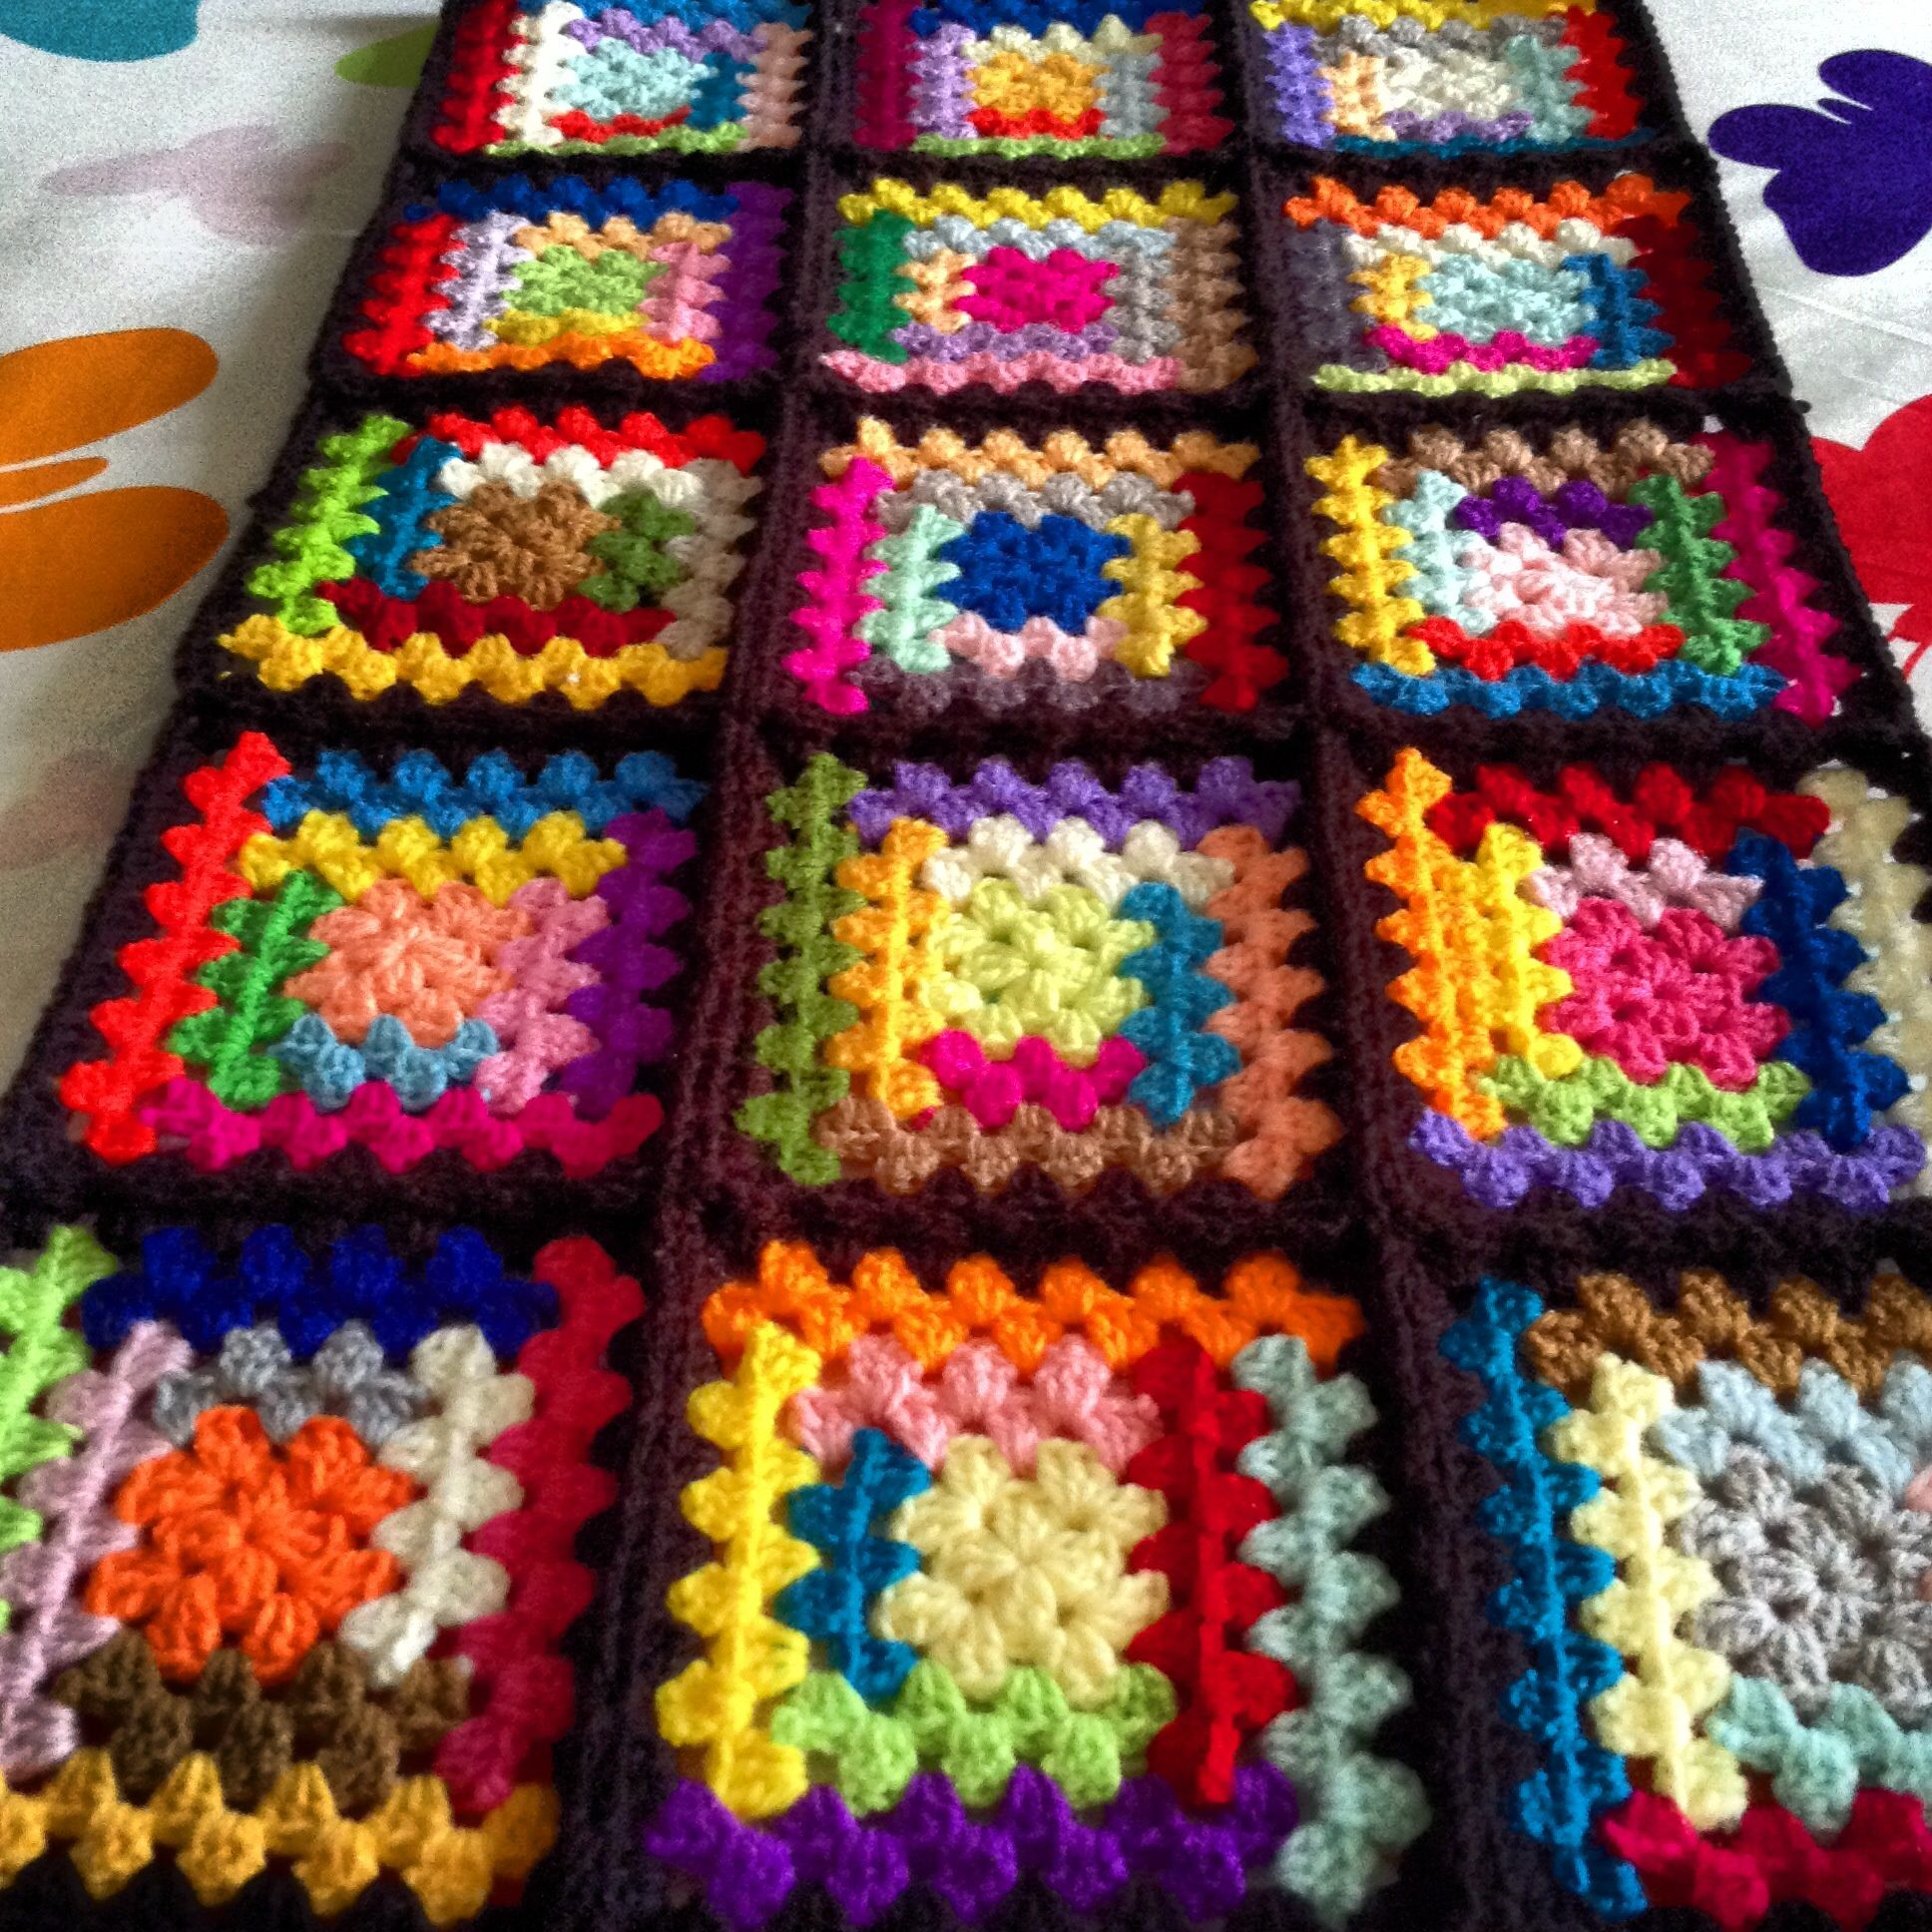 Log cabin granny square knitting crochet blankets pinterest log cabin granny square crochet granny squaressimple bankloansurffo Image collections